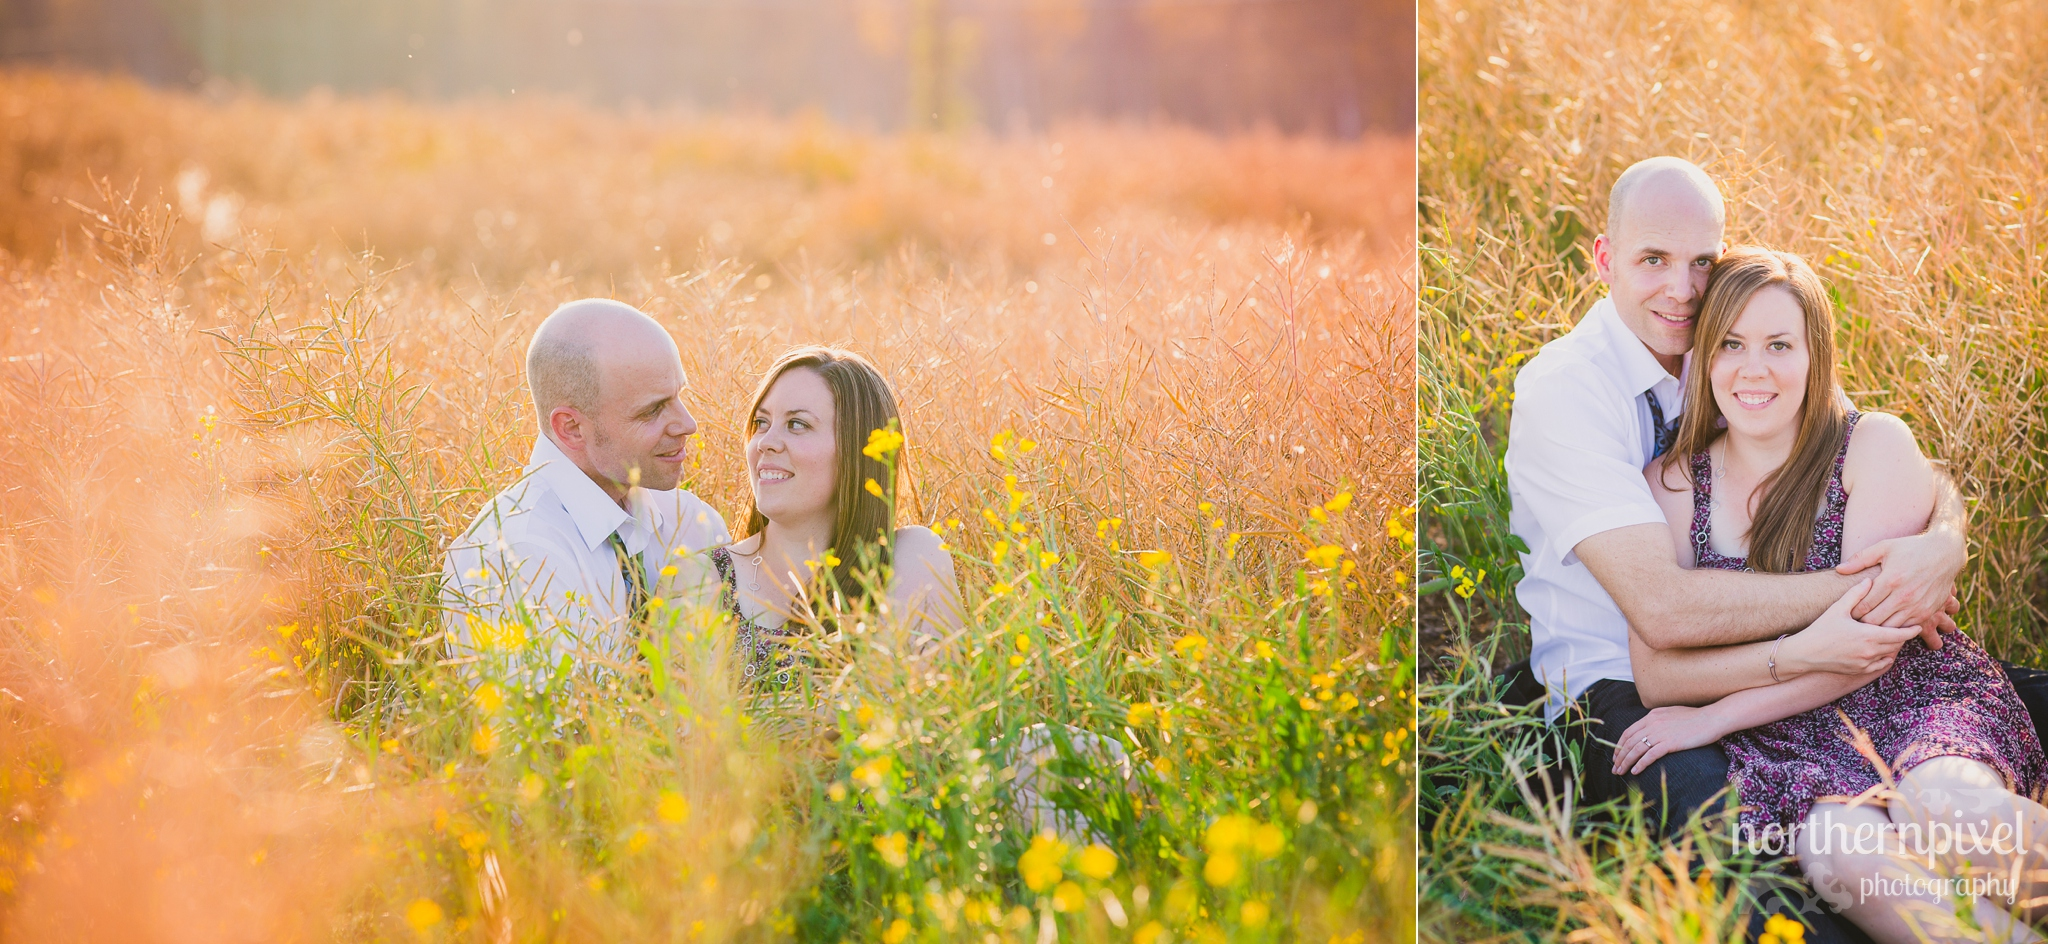 Engagement Session - Smithers BC